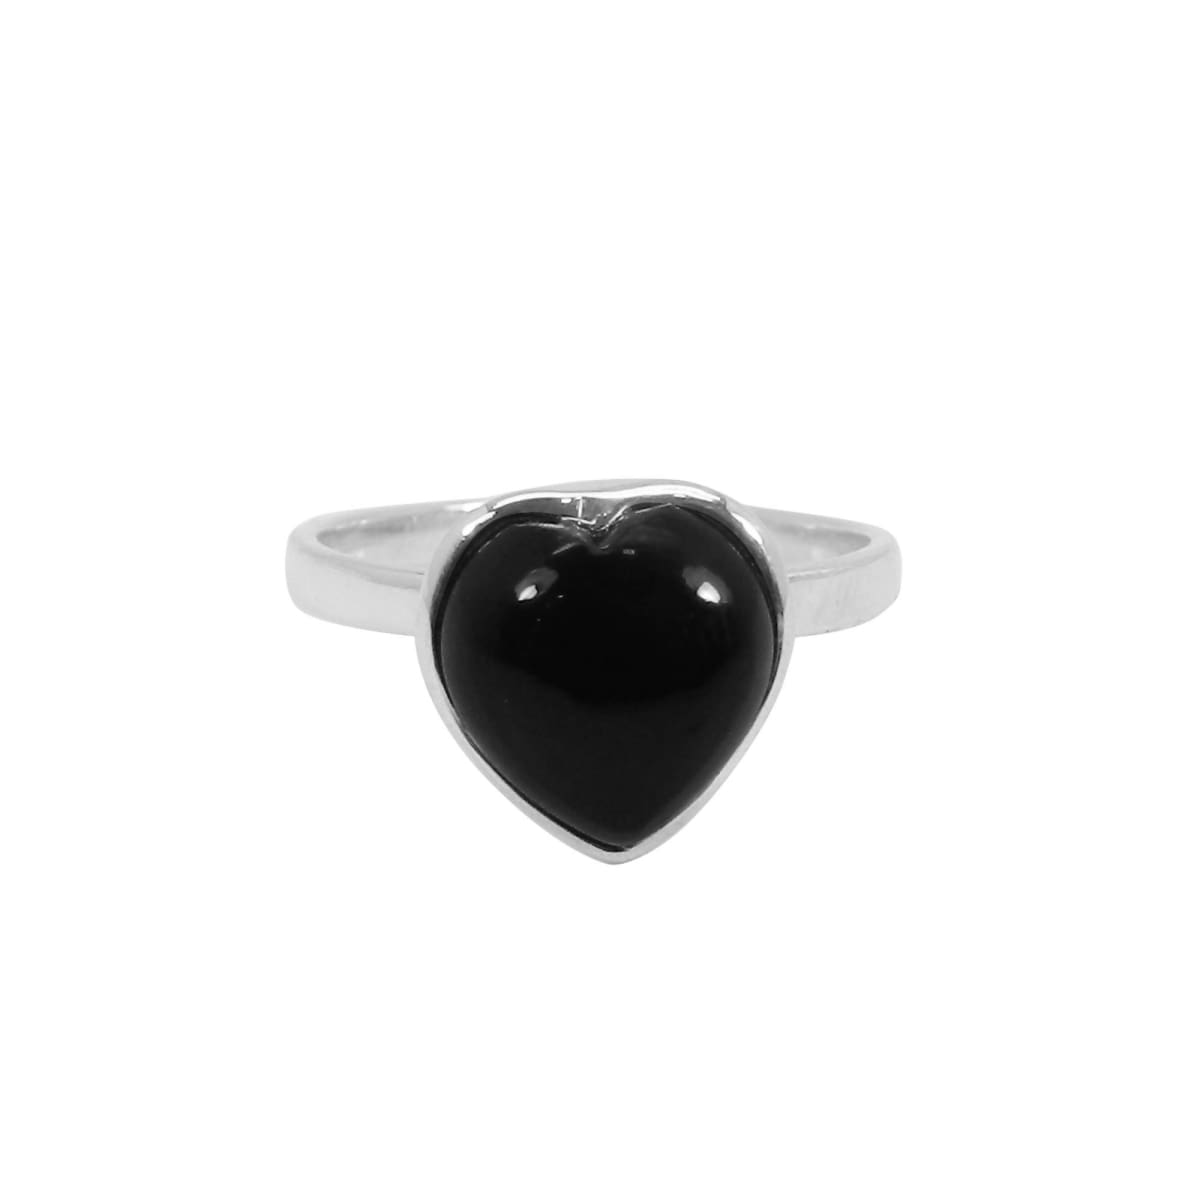 Rings Black Onyx Ring Silver 925 Solid Sterling Boho Handmade Sizes 4 to 14 US